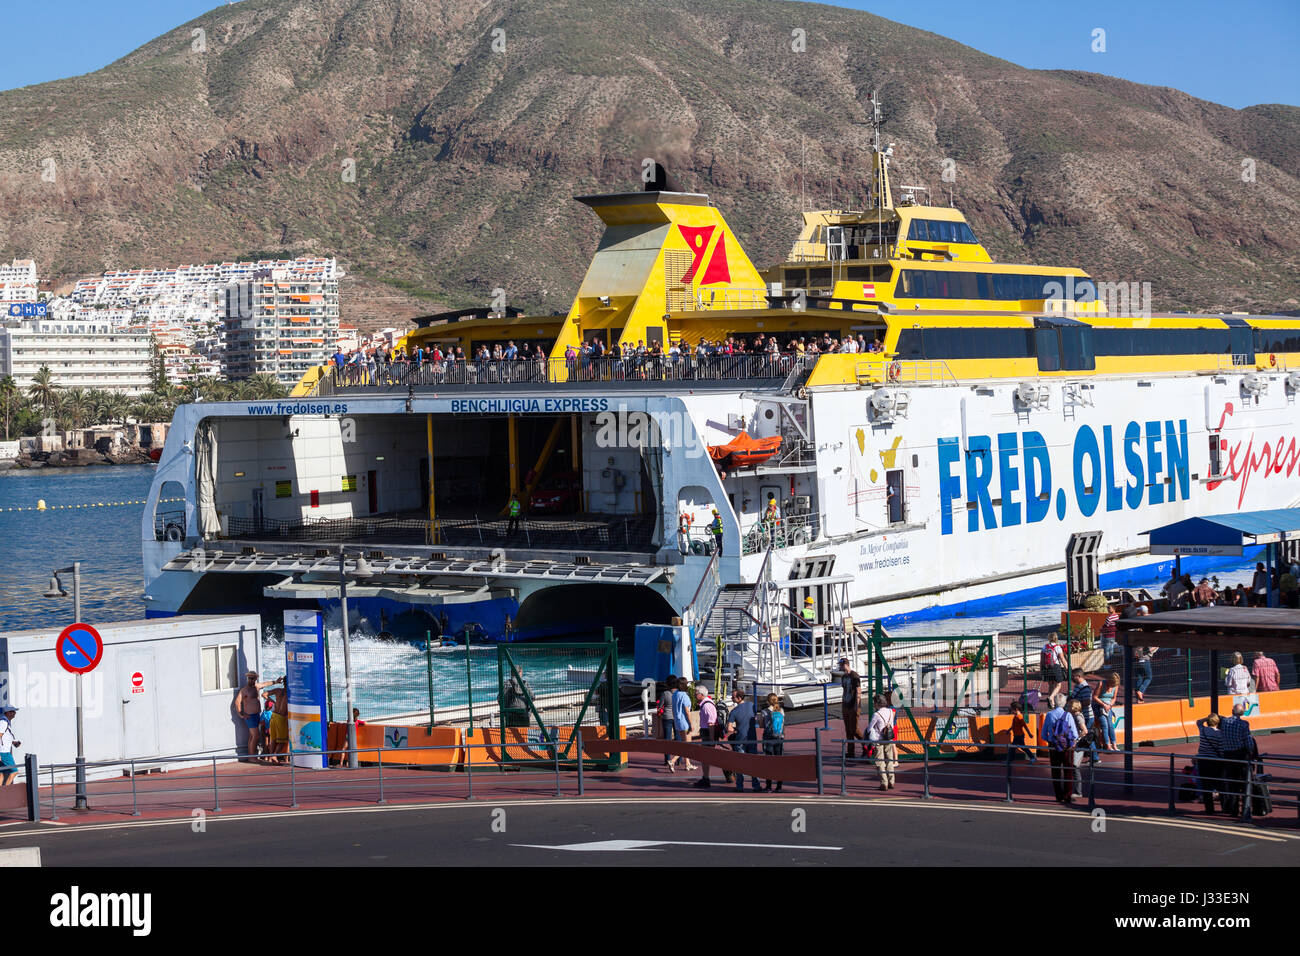 Atlantic express stock photos atlantic express stock for Oficina fred olsen los cristianos